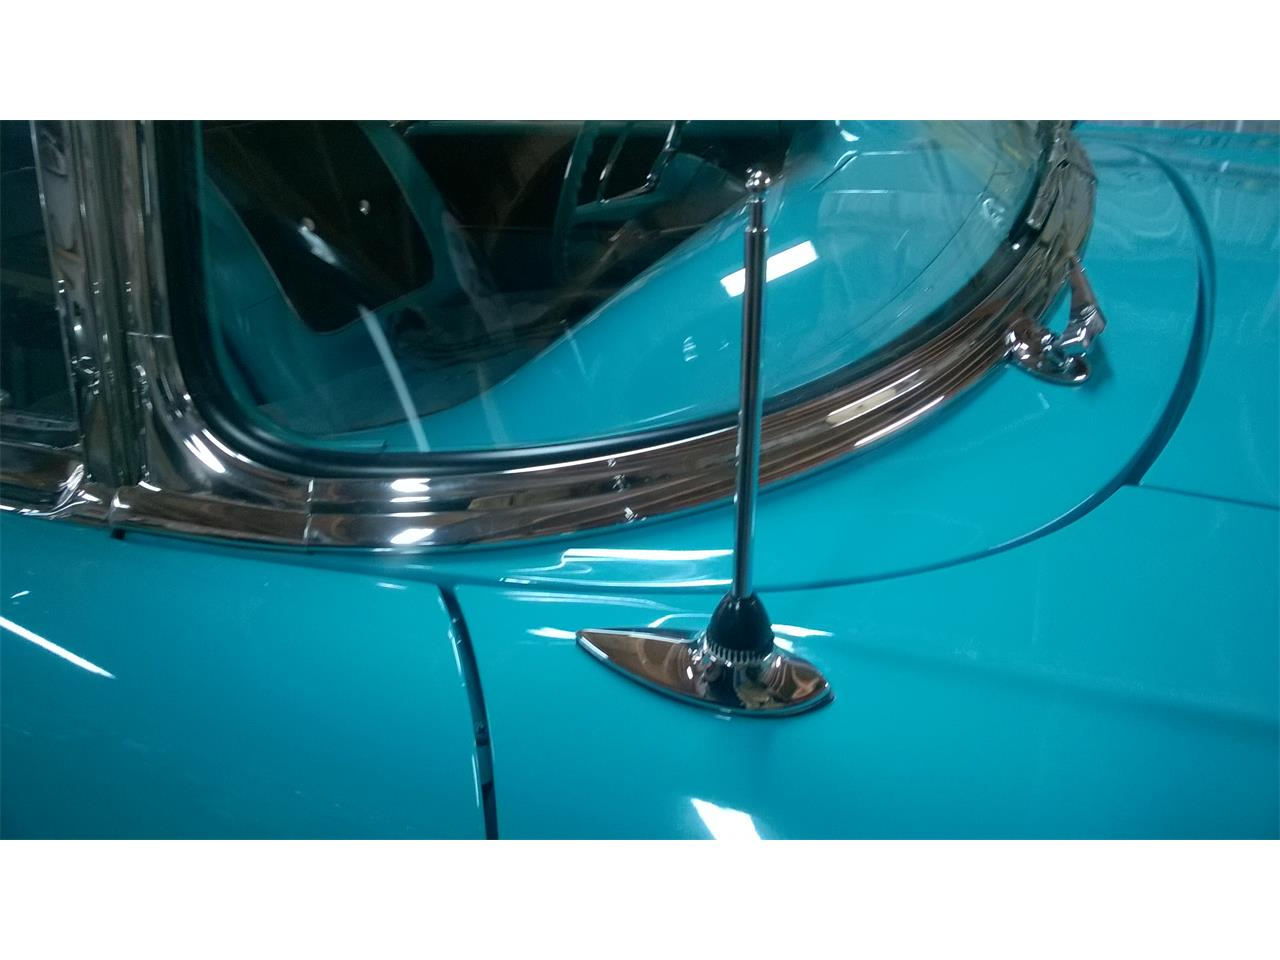 Large Picture of 1957 Chevrolet Bel Air - $55,500.00 Offered by a Private Seller - MXZH